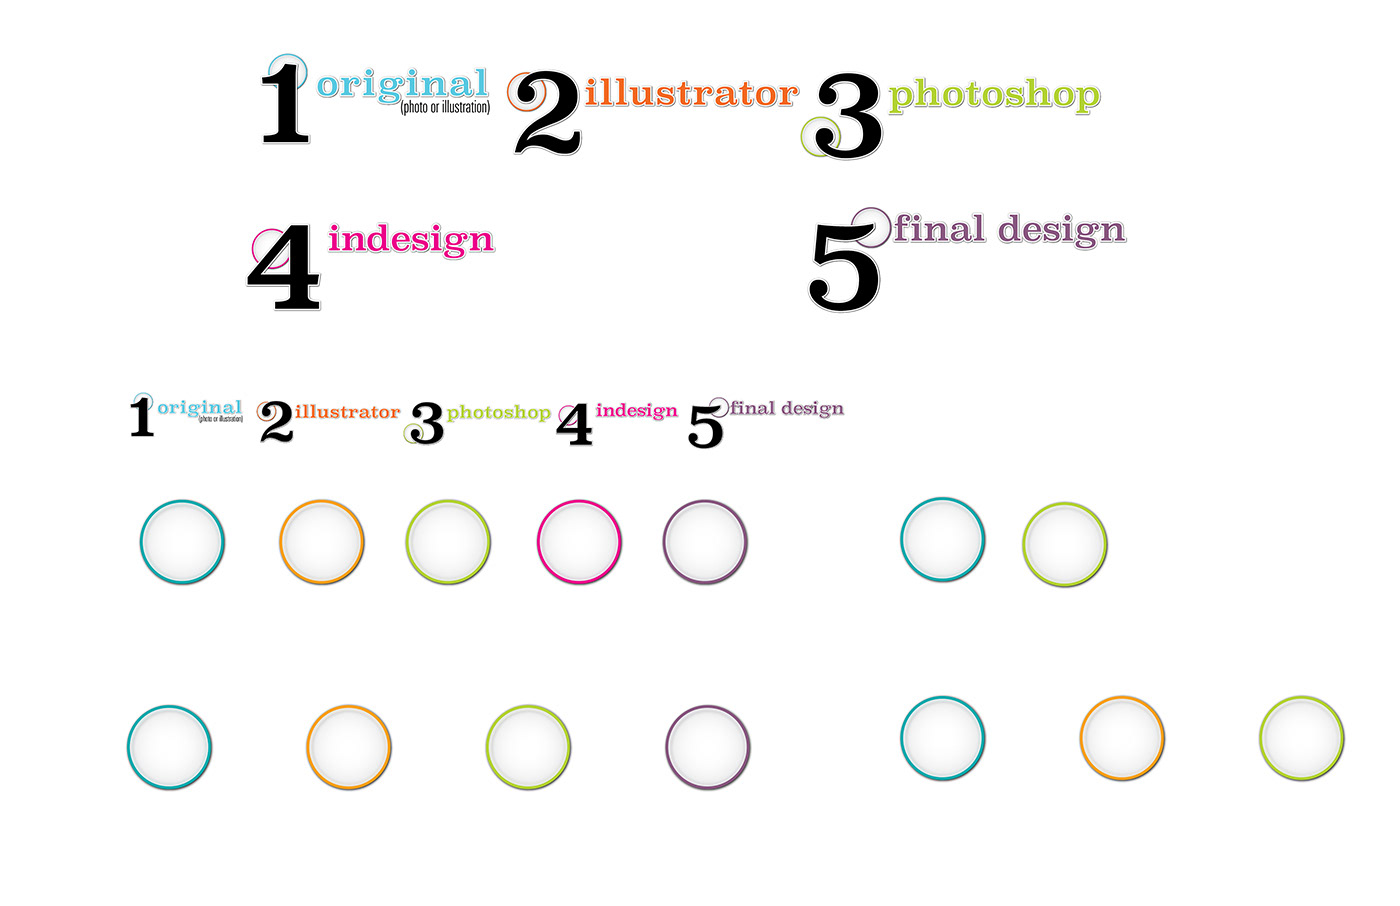 This Is Another Version Of The Design I Am Using For My Process Index In Portfolio